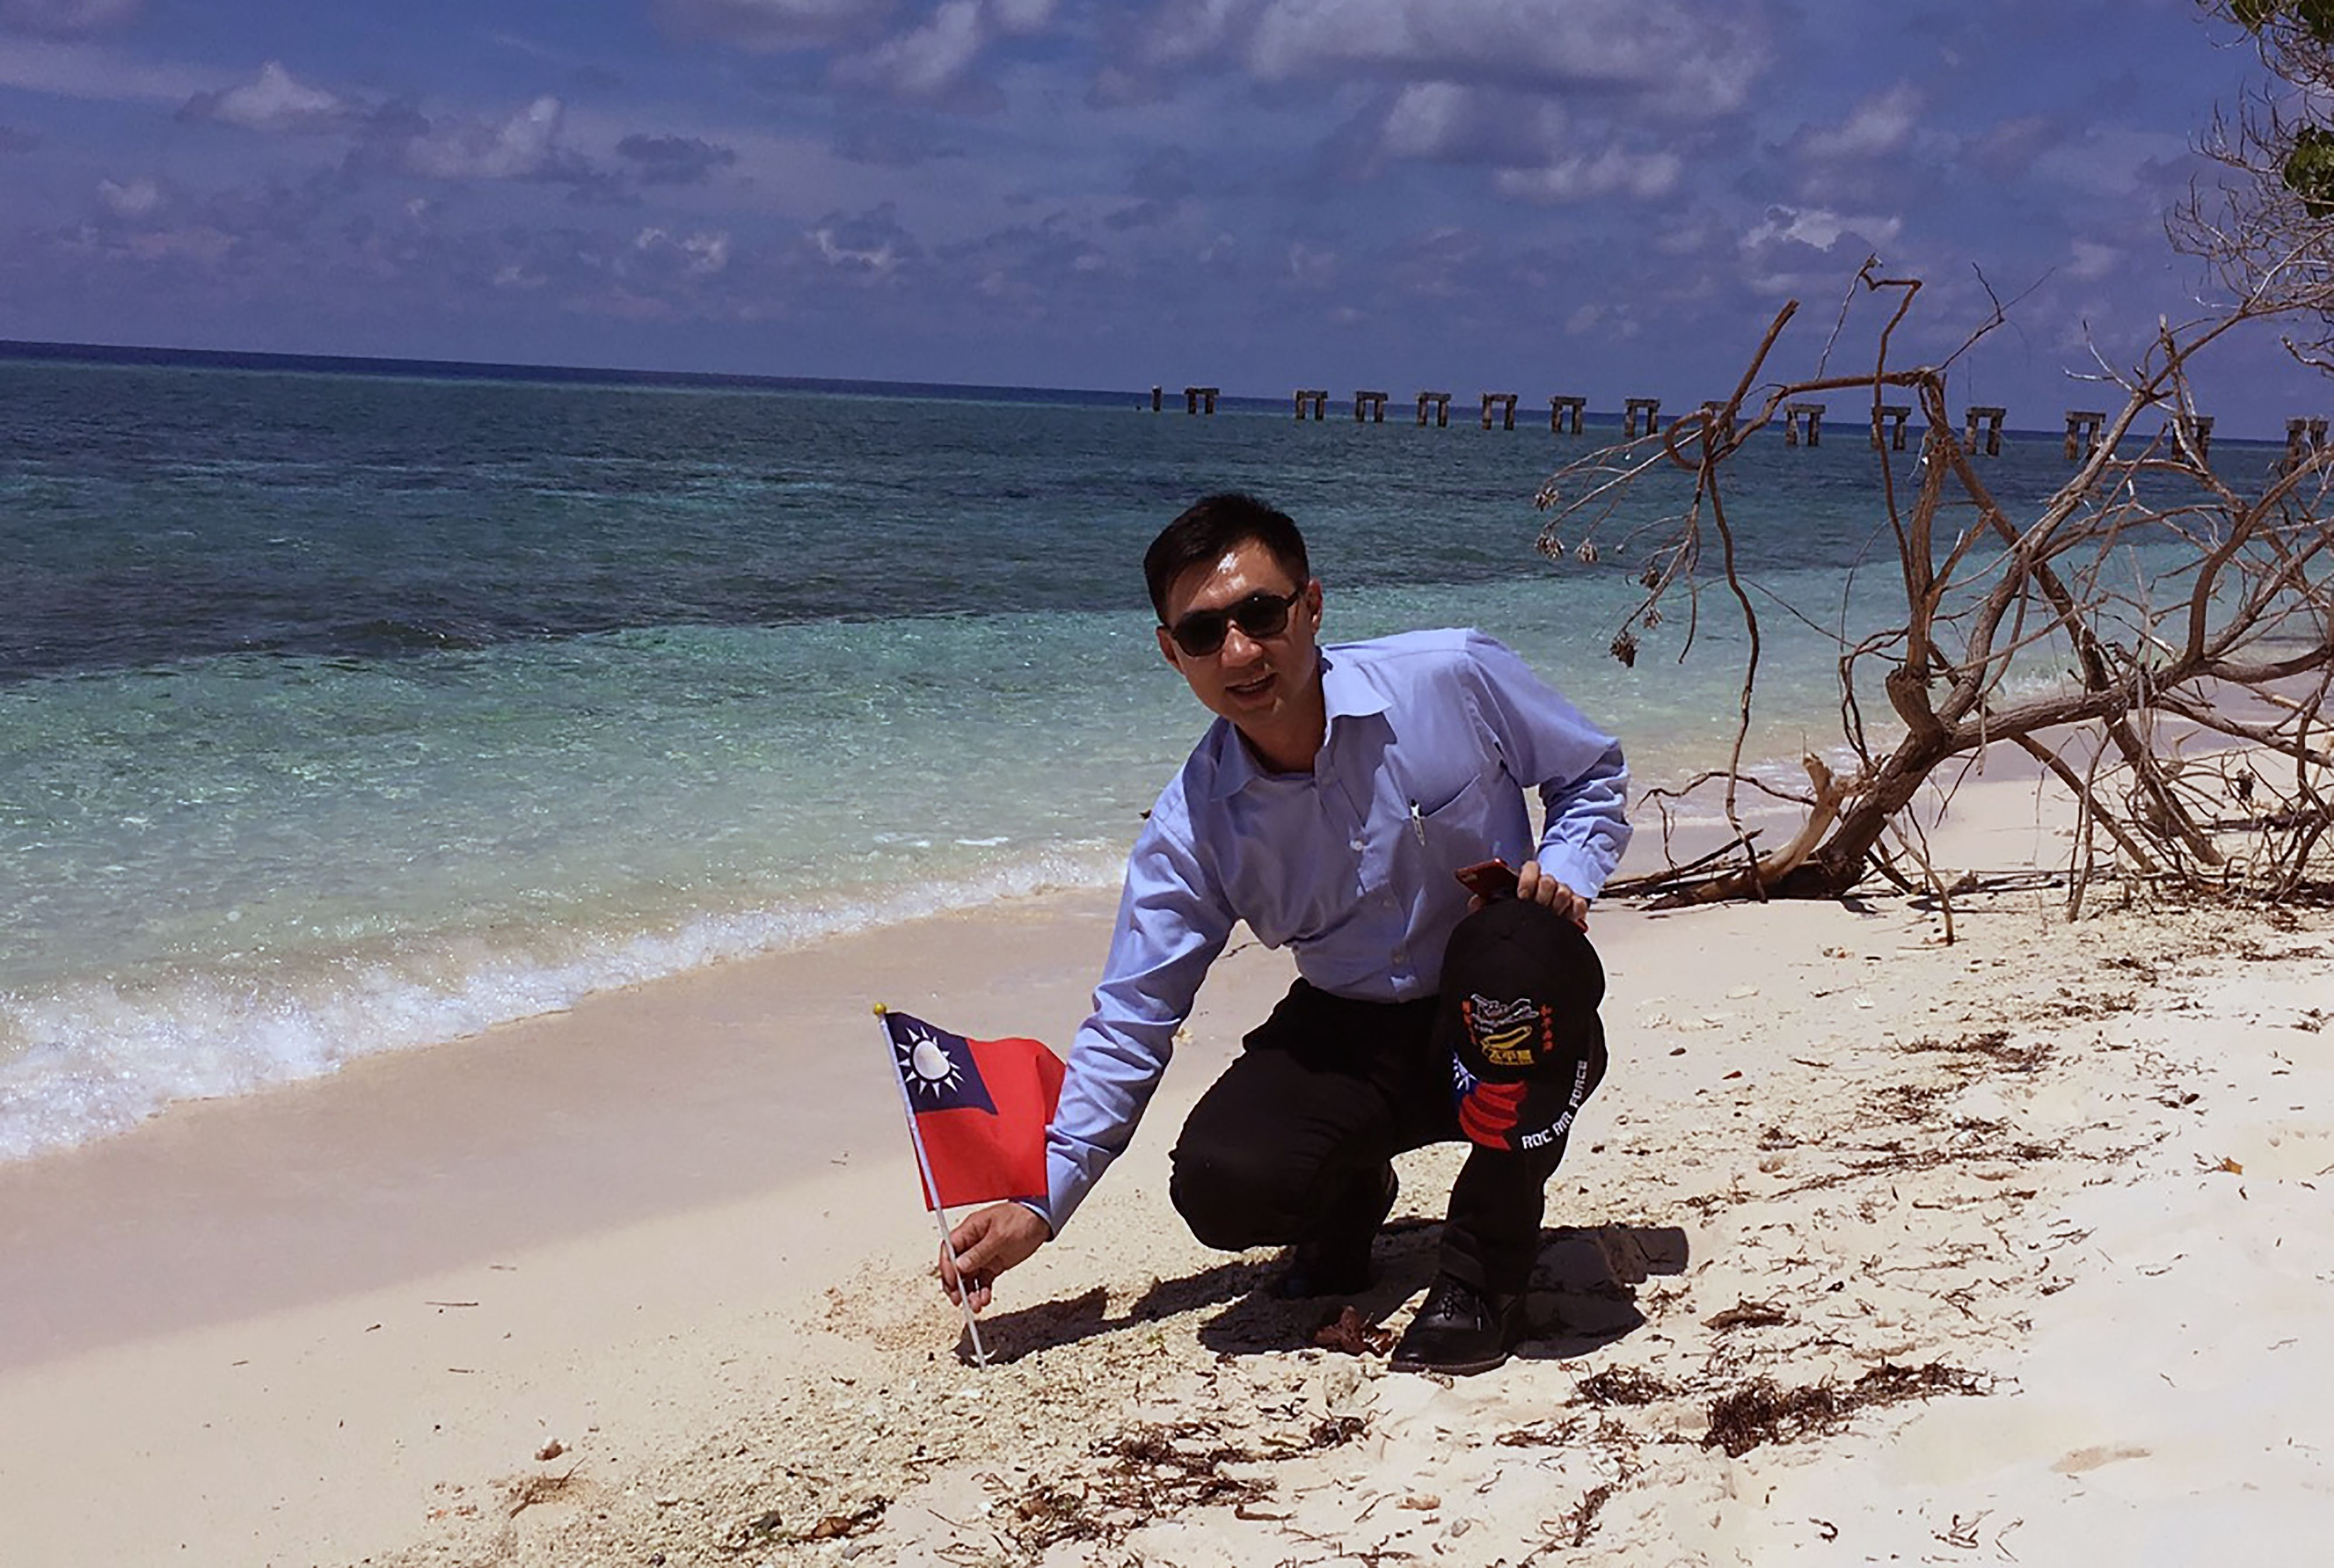 This handout picture taken and released Wednesday by the office of Kuomintang (KMT) lawmaker Johnny Chiang shows  Chiang holding a Taiwanese flag during a visit to Taiping island in the South China Sea. | THE OFFICE OF KUOMINTANG (KMT) LAWMAKER JOHNNY CHIANG / AFP-JIJI